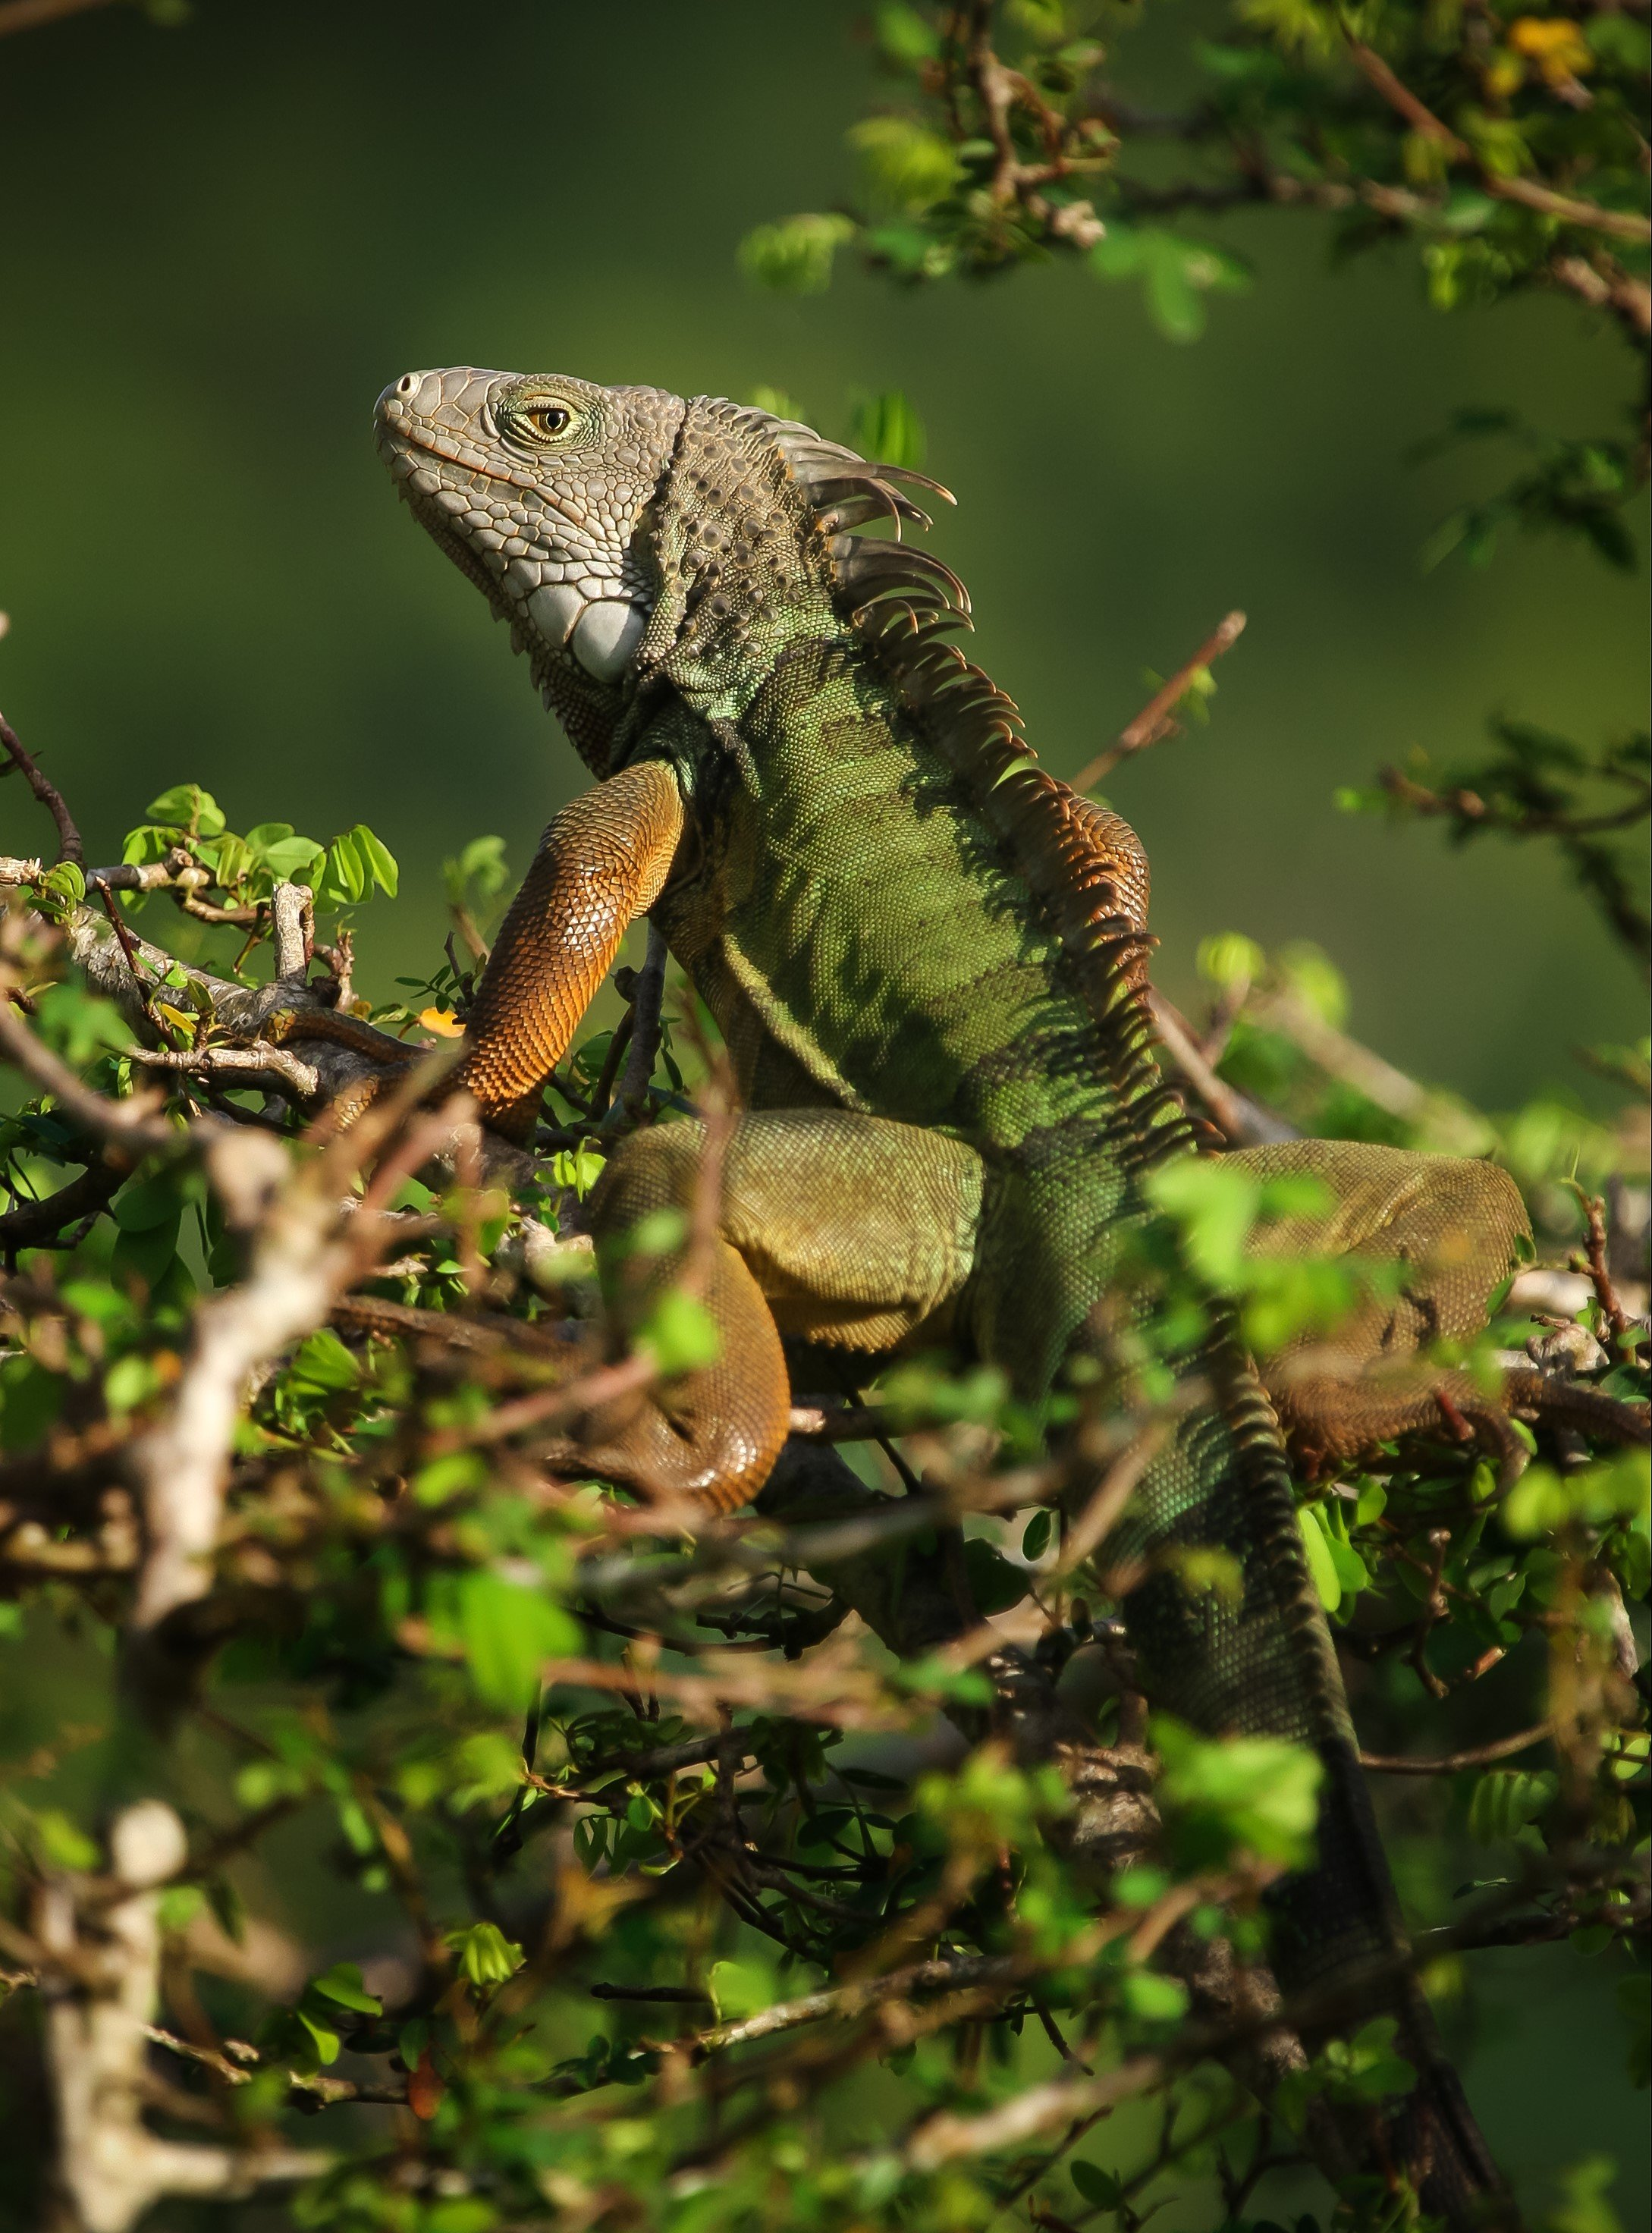 For exotic pets, the most popular are also most likely to ...